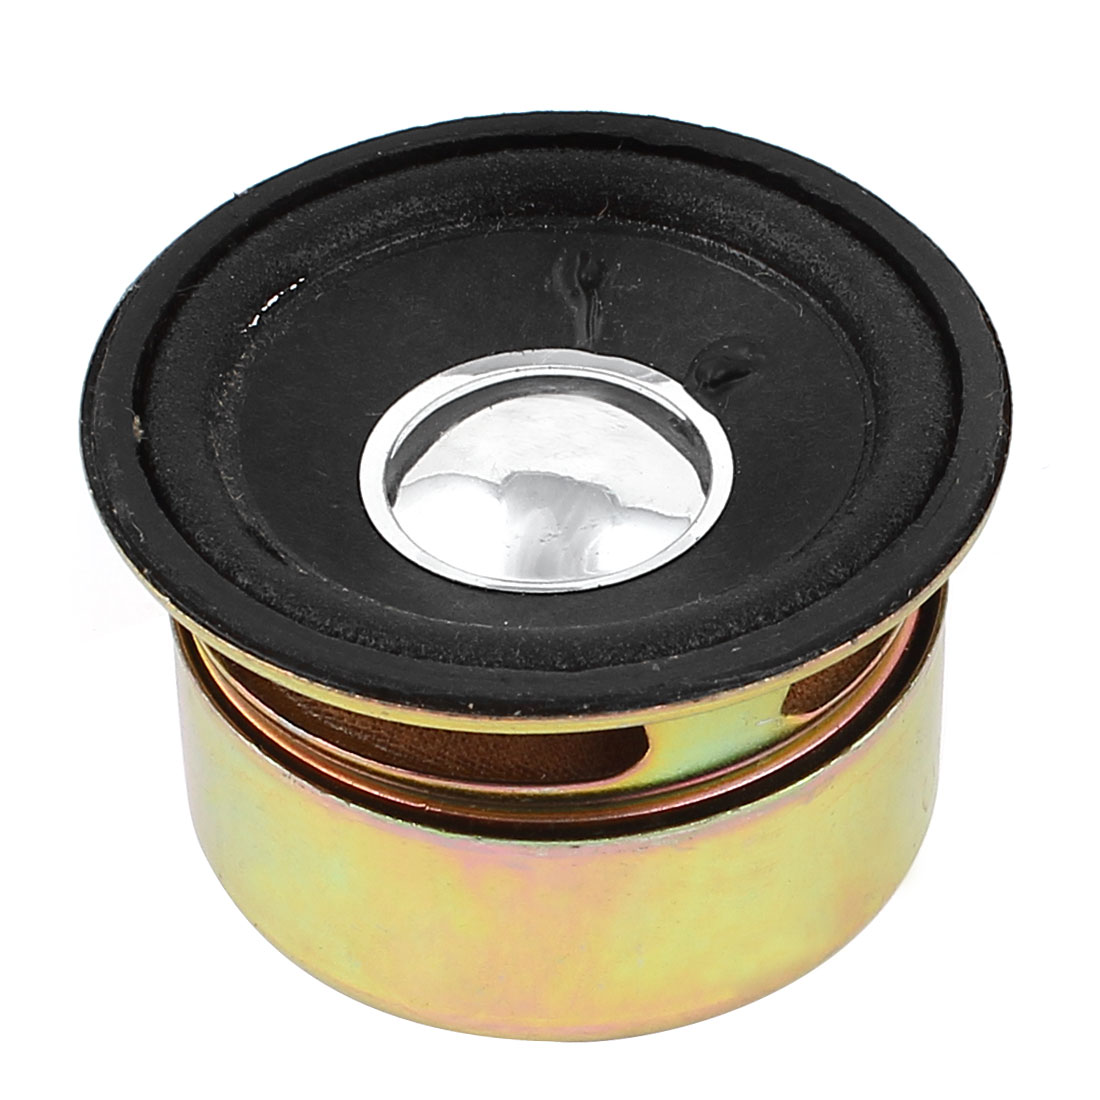 3W 4 Ohm 50mmx30mm Round Shape Metal Shell Magnet Electronic Speaker Loudspeaker